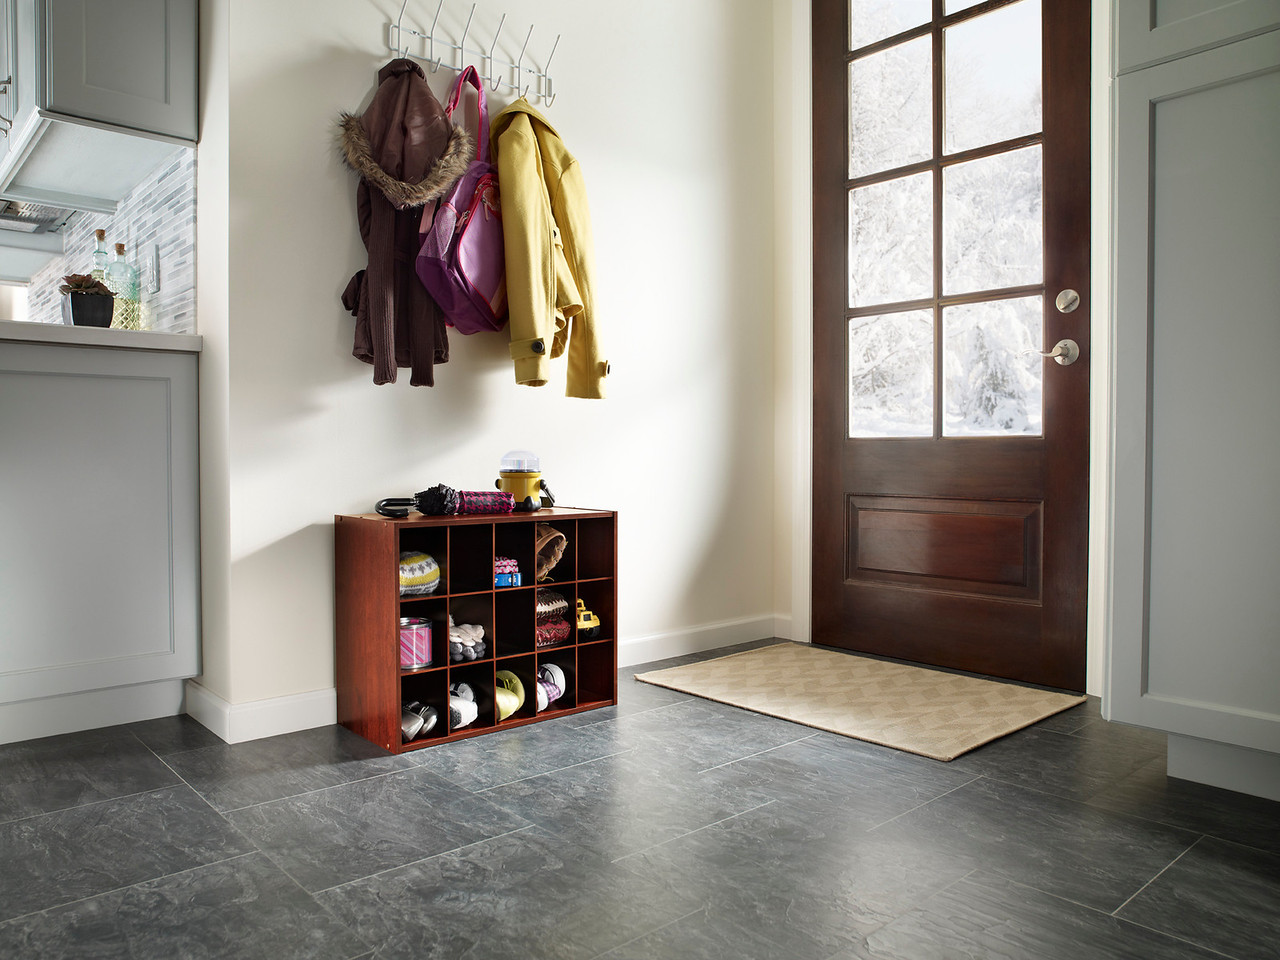 Easily add extra storage to your entryway with a ClosetMaid Stackable 15-Cube Organizer in Dark Cherry.